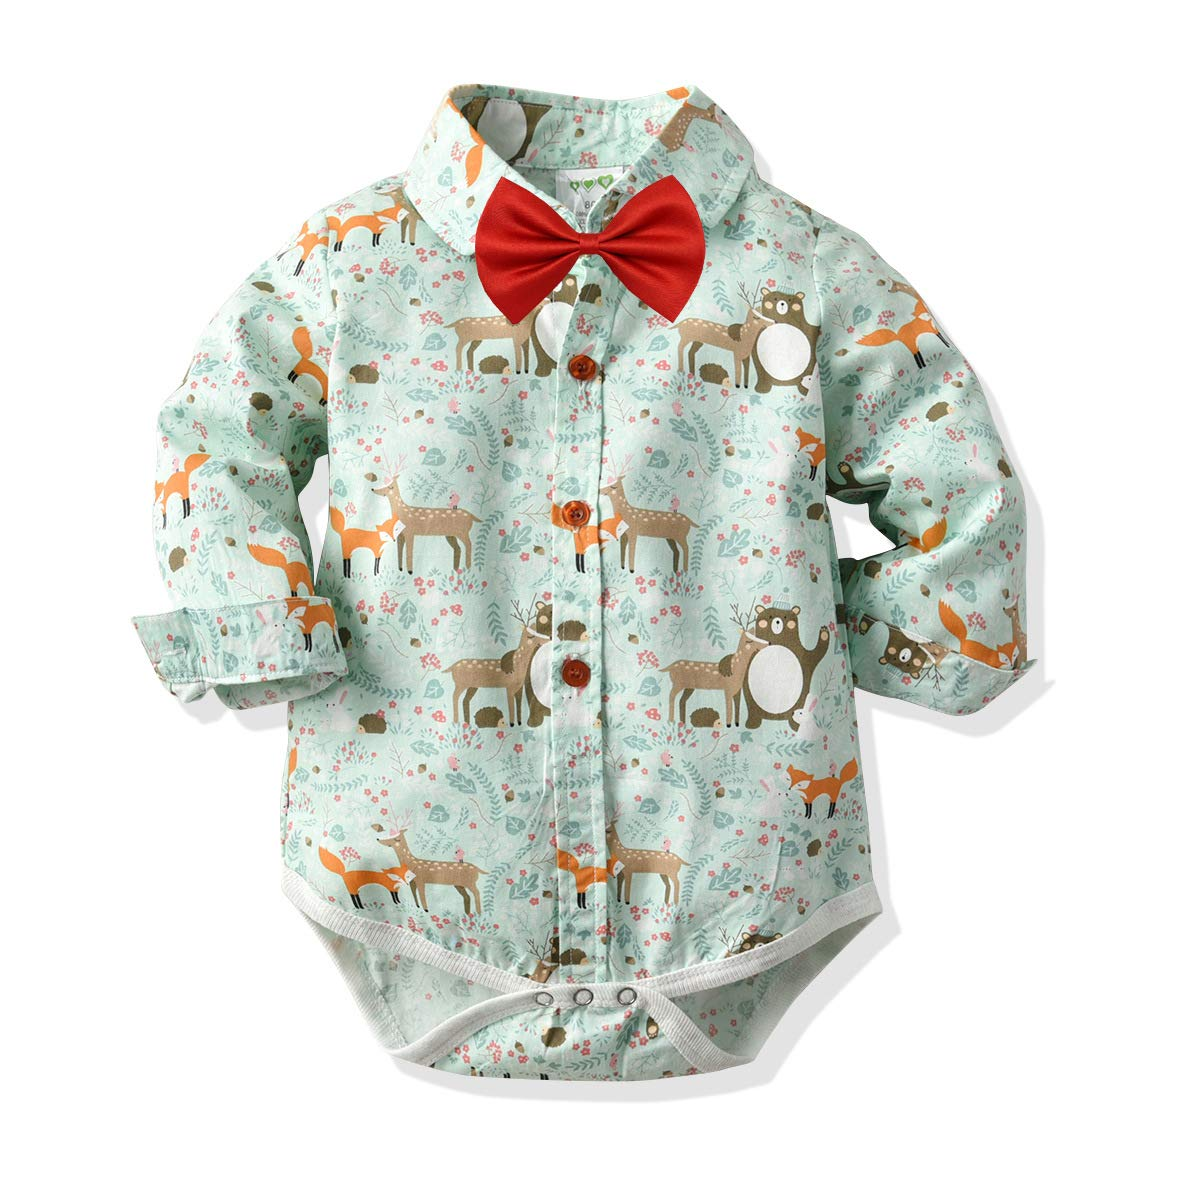 Infant Toddler Newborn Boys Baby Gentleman Outfits Set,Long Sleeve Button Down Lapel Romper Bow Tie Print Clothing Bodysuits Green by KINGLEN Baby Romper